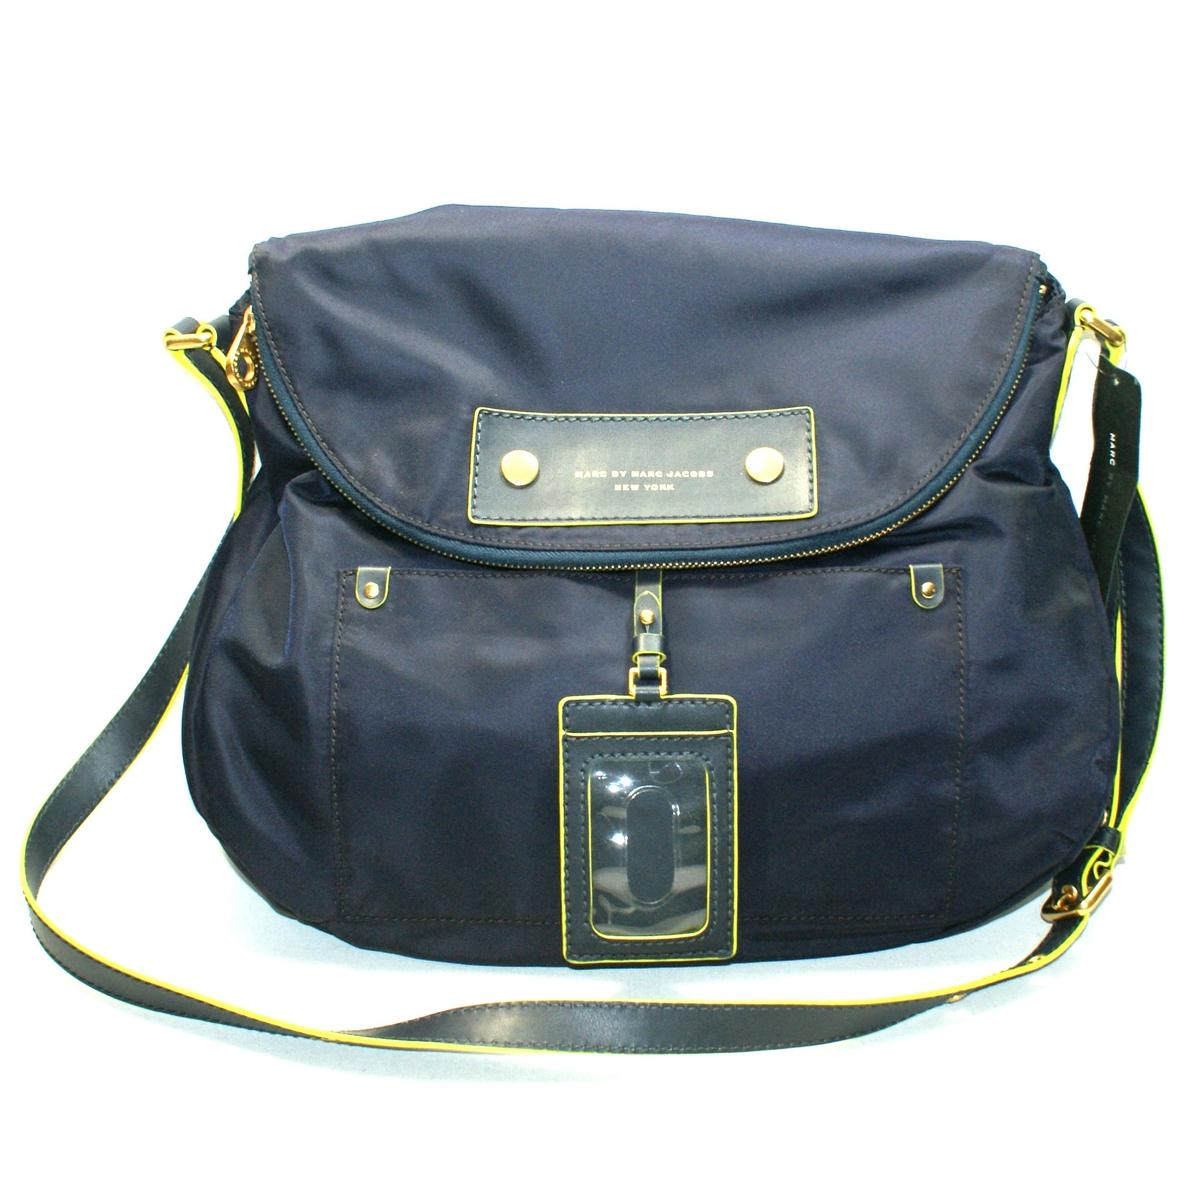 bd86bef80476 ... Marc Jacobs · Midnight Purple Large Nylon Cross Body Bag. CLICK  THUMBNAIL TO ZOOM. Found ...